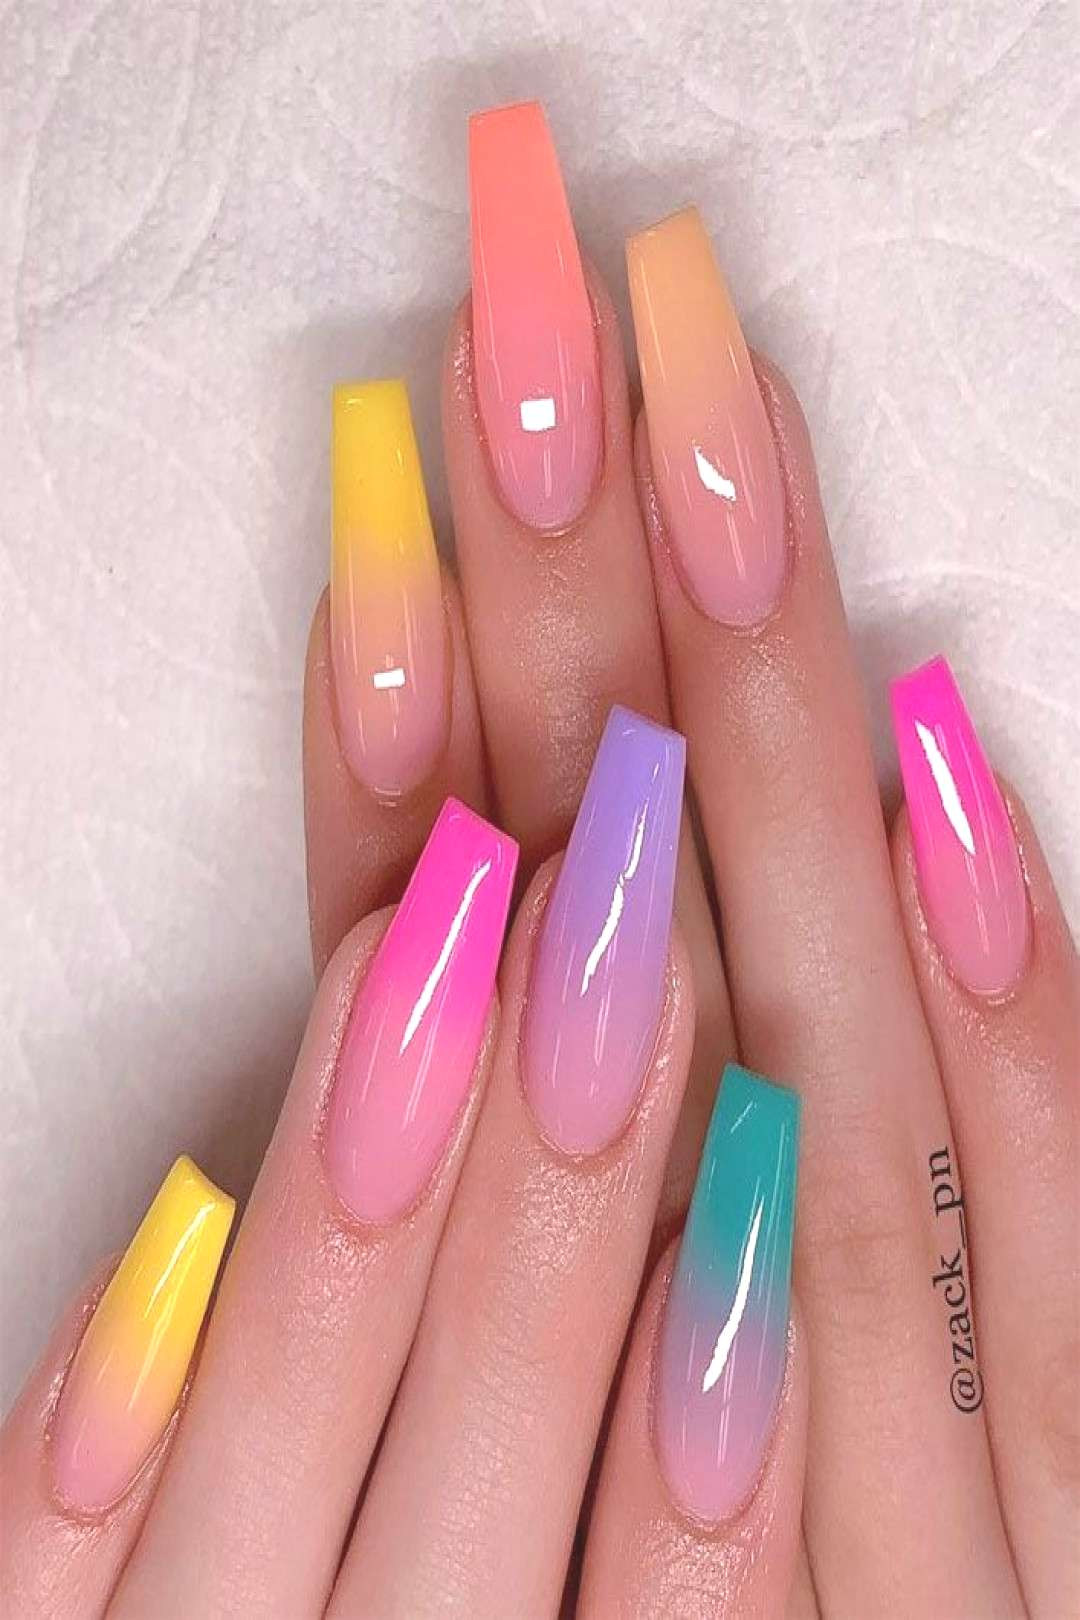 40 Fabulous Nail Designs That Are Totally In Season Right Now 40 conceptions dongles fabuleuses qu